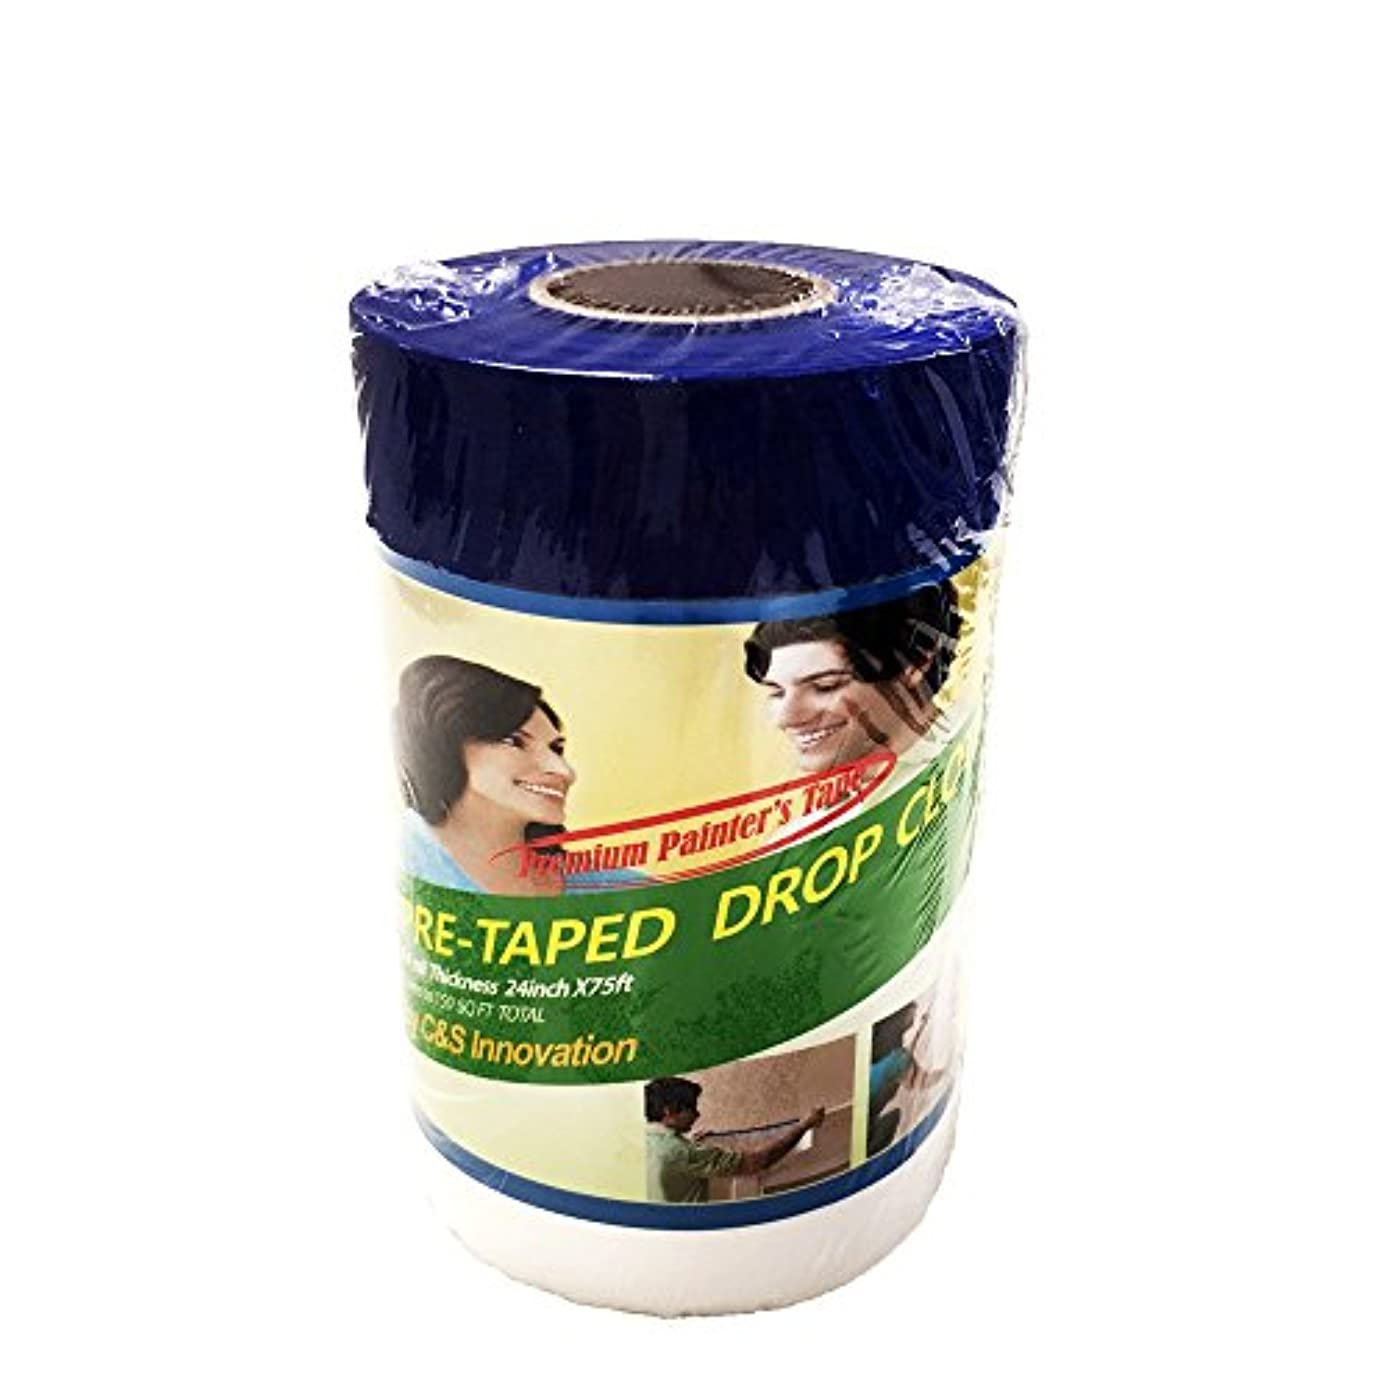 Pretaped Drop Cloth along with Blue Masking Tape (24 in x 75 ft (1 ct))